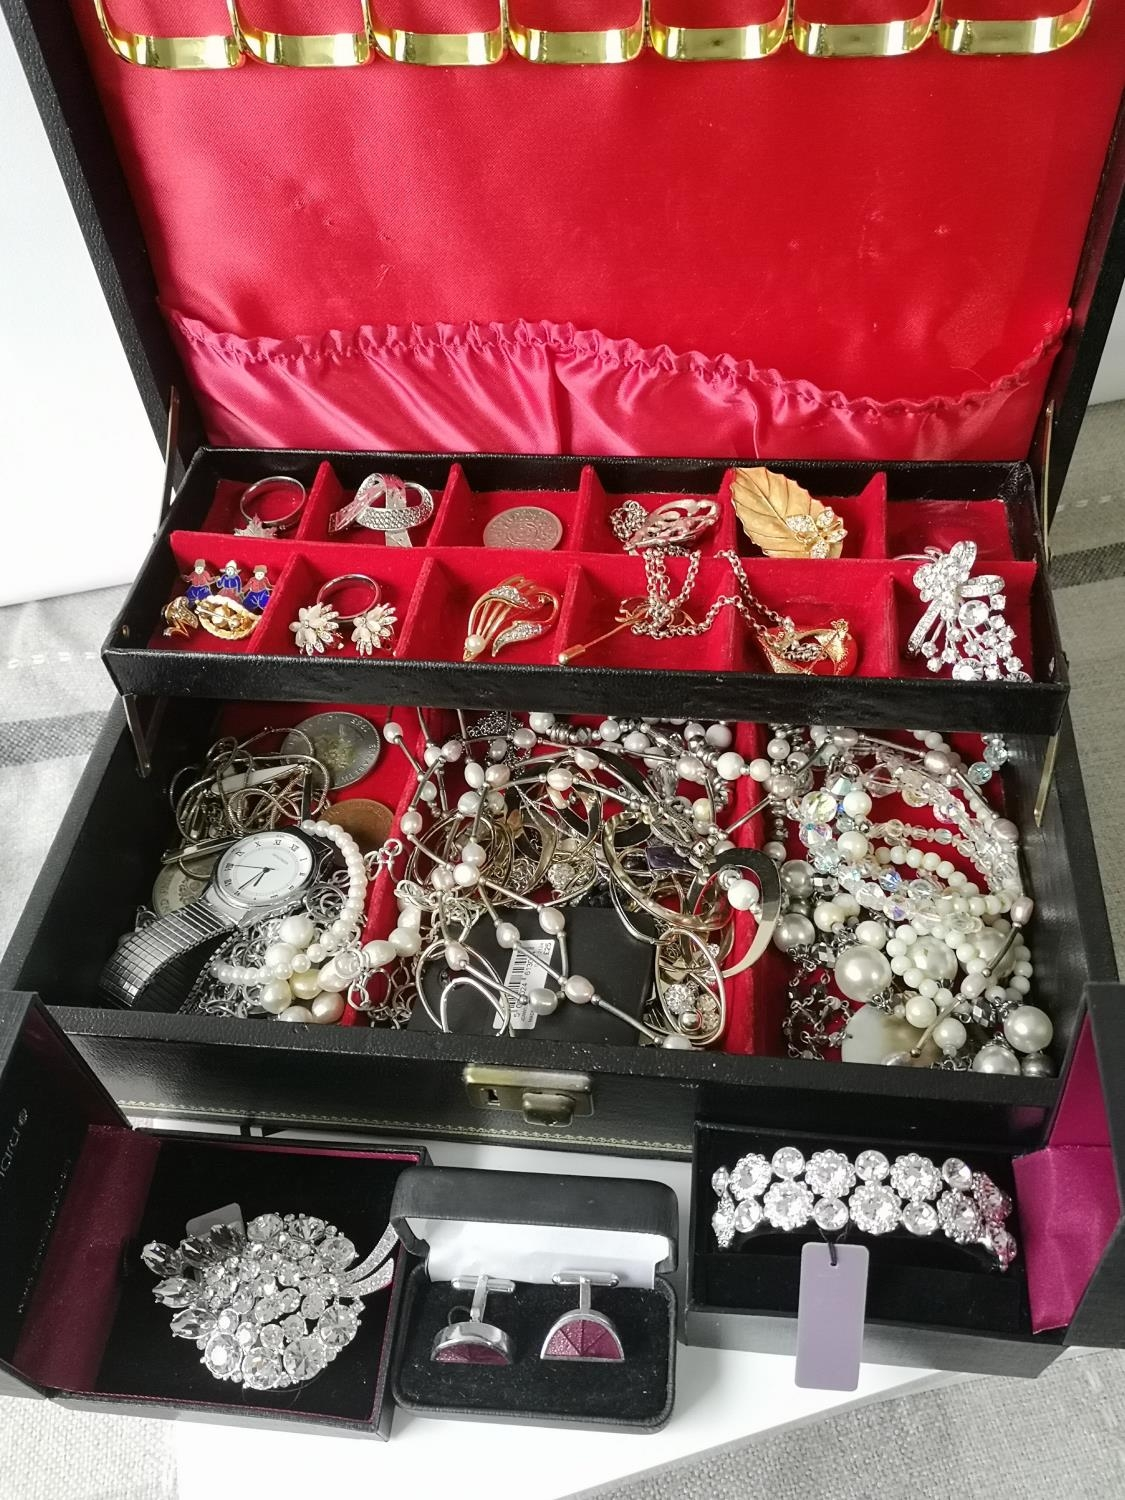 A Jewellery box containing a quantity of costume jewellery to include brooches, necklaces,